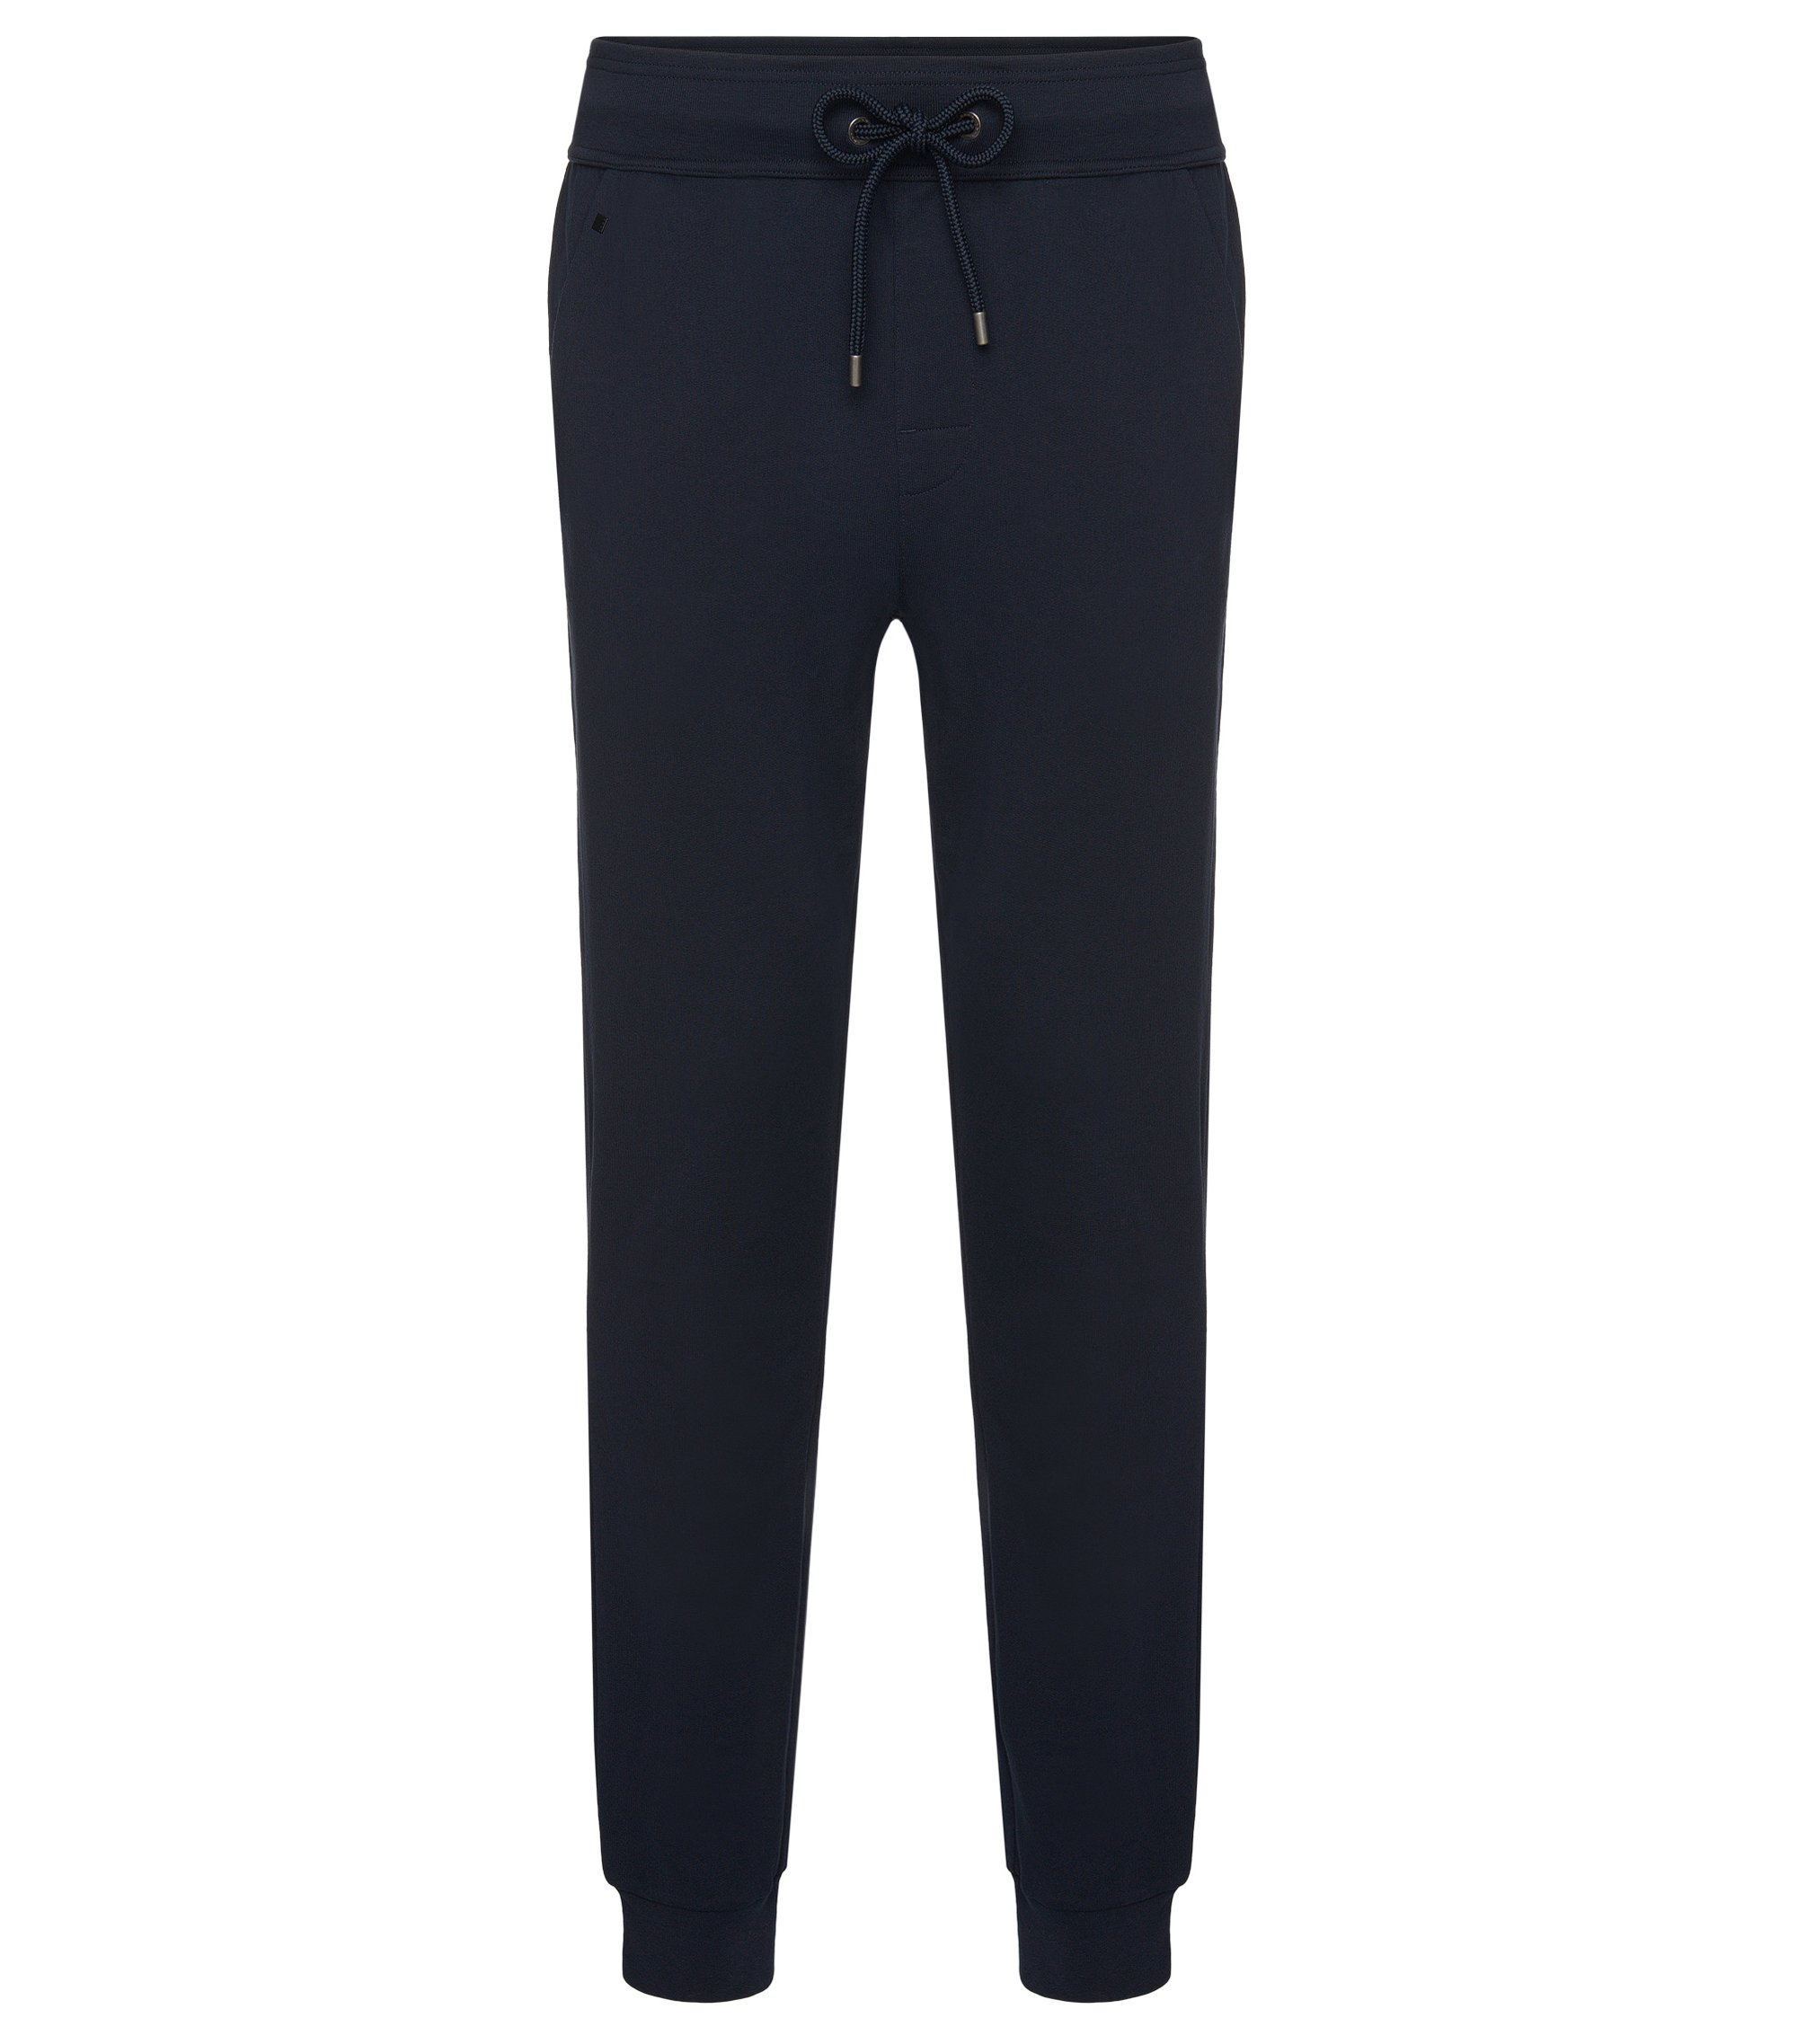 Cotton Sweat Pant | Long Pant Cuffs, Dark Blue